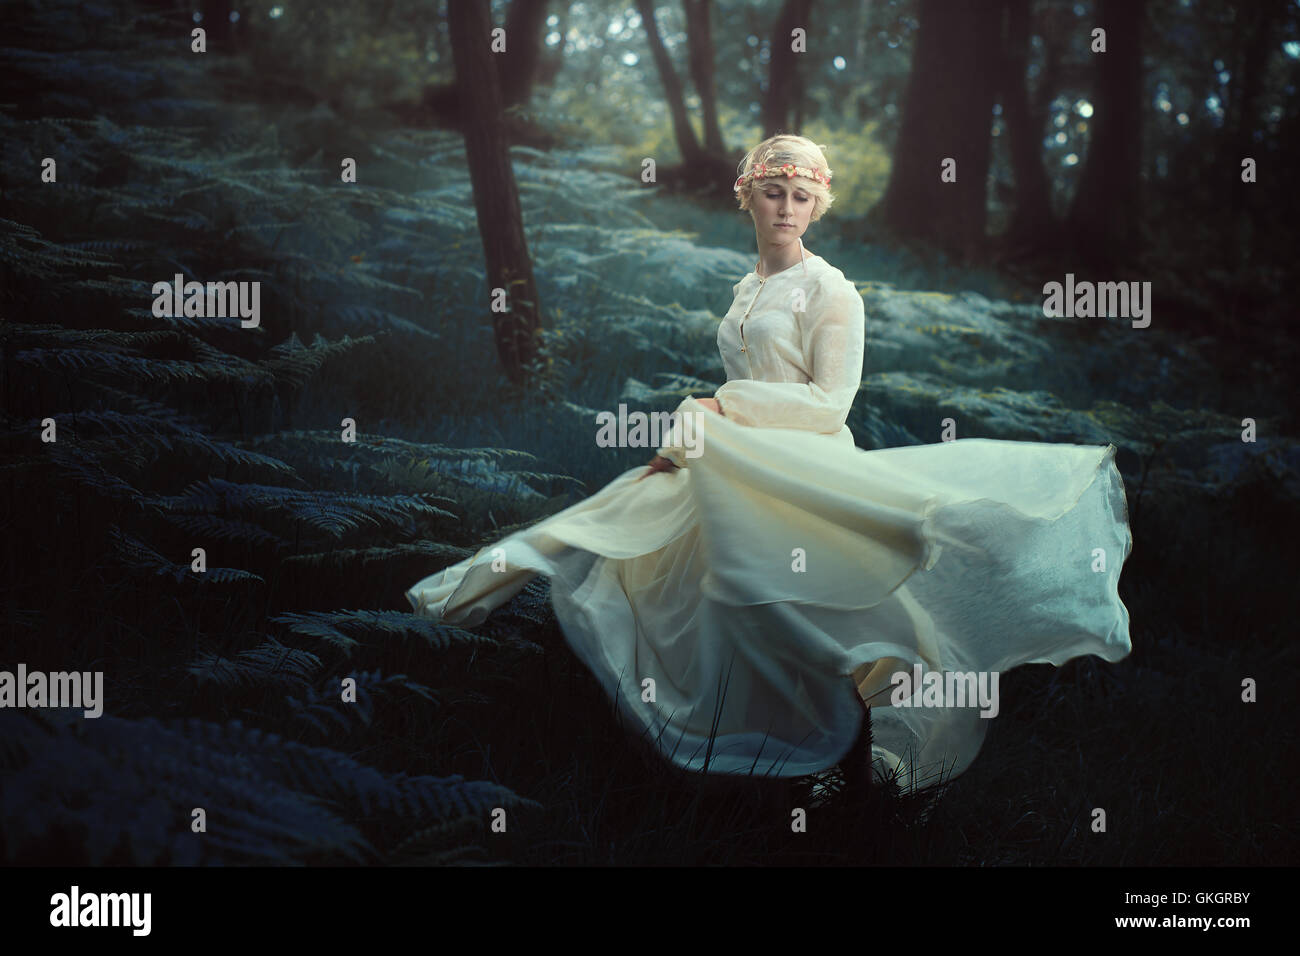 Ethereal woman dancing in dreamy foresta. Fantasia e surreale Immagini Stock